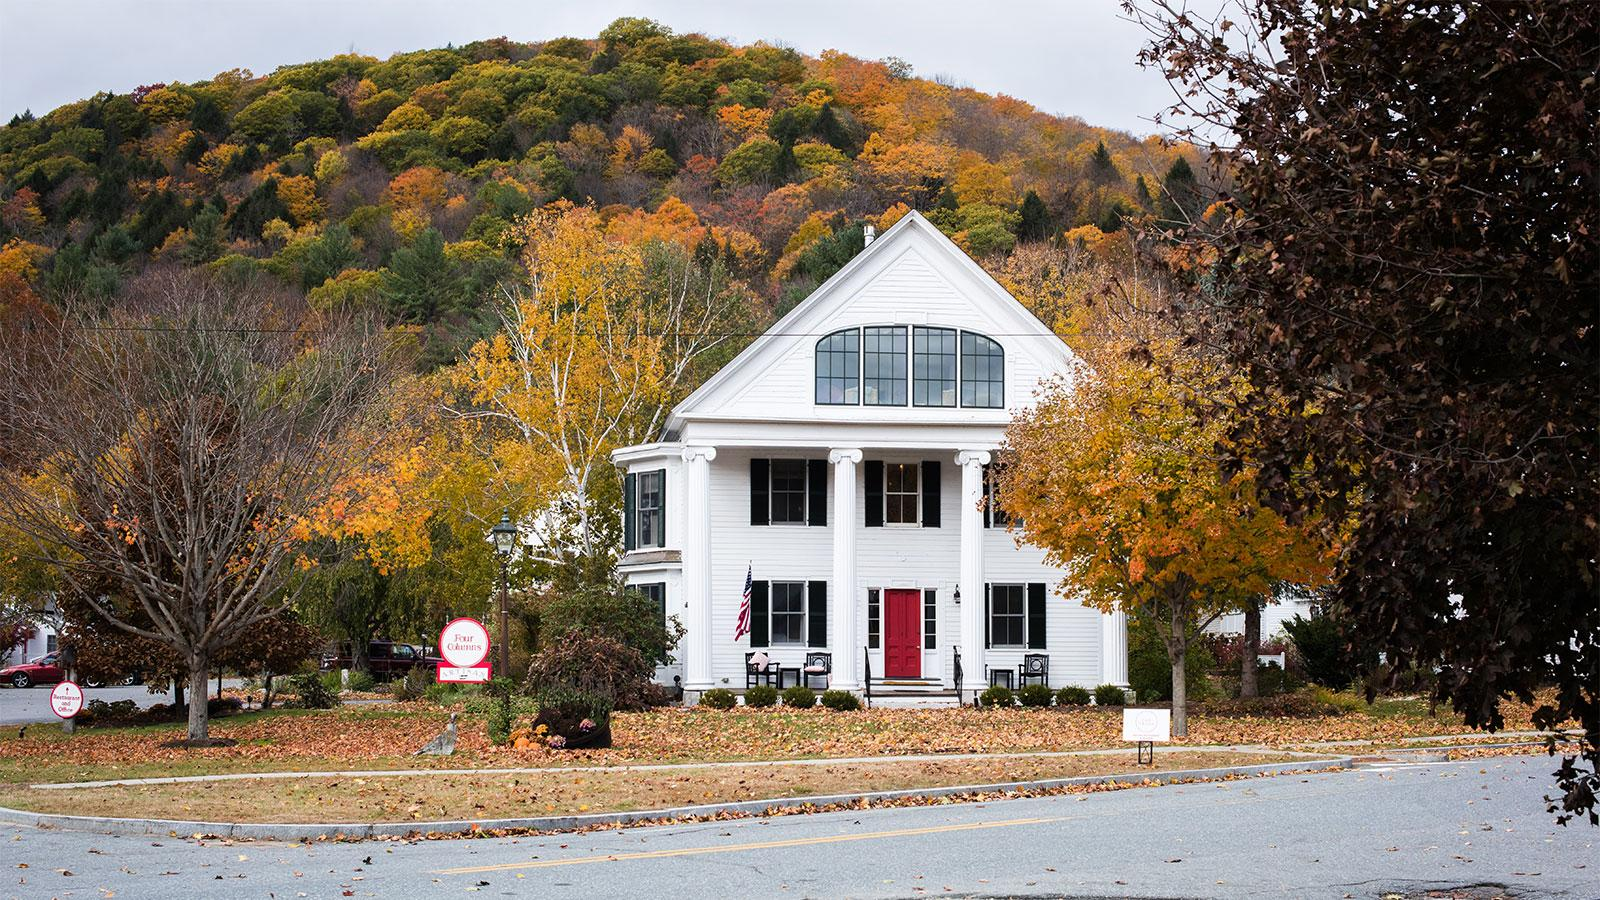 The exterior of Four Columns Inn, with fall-colored foliage in the background